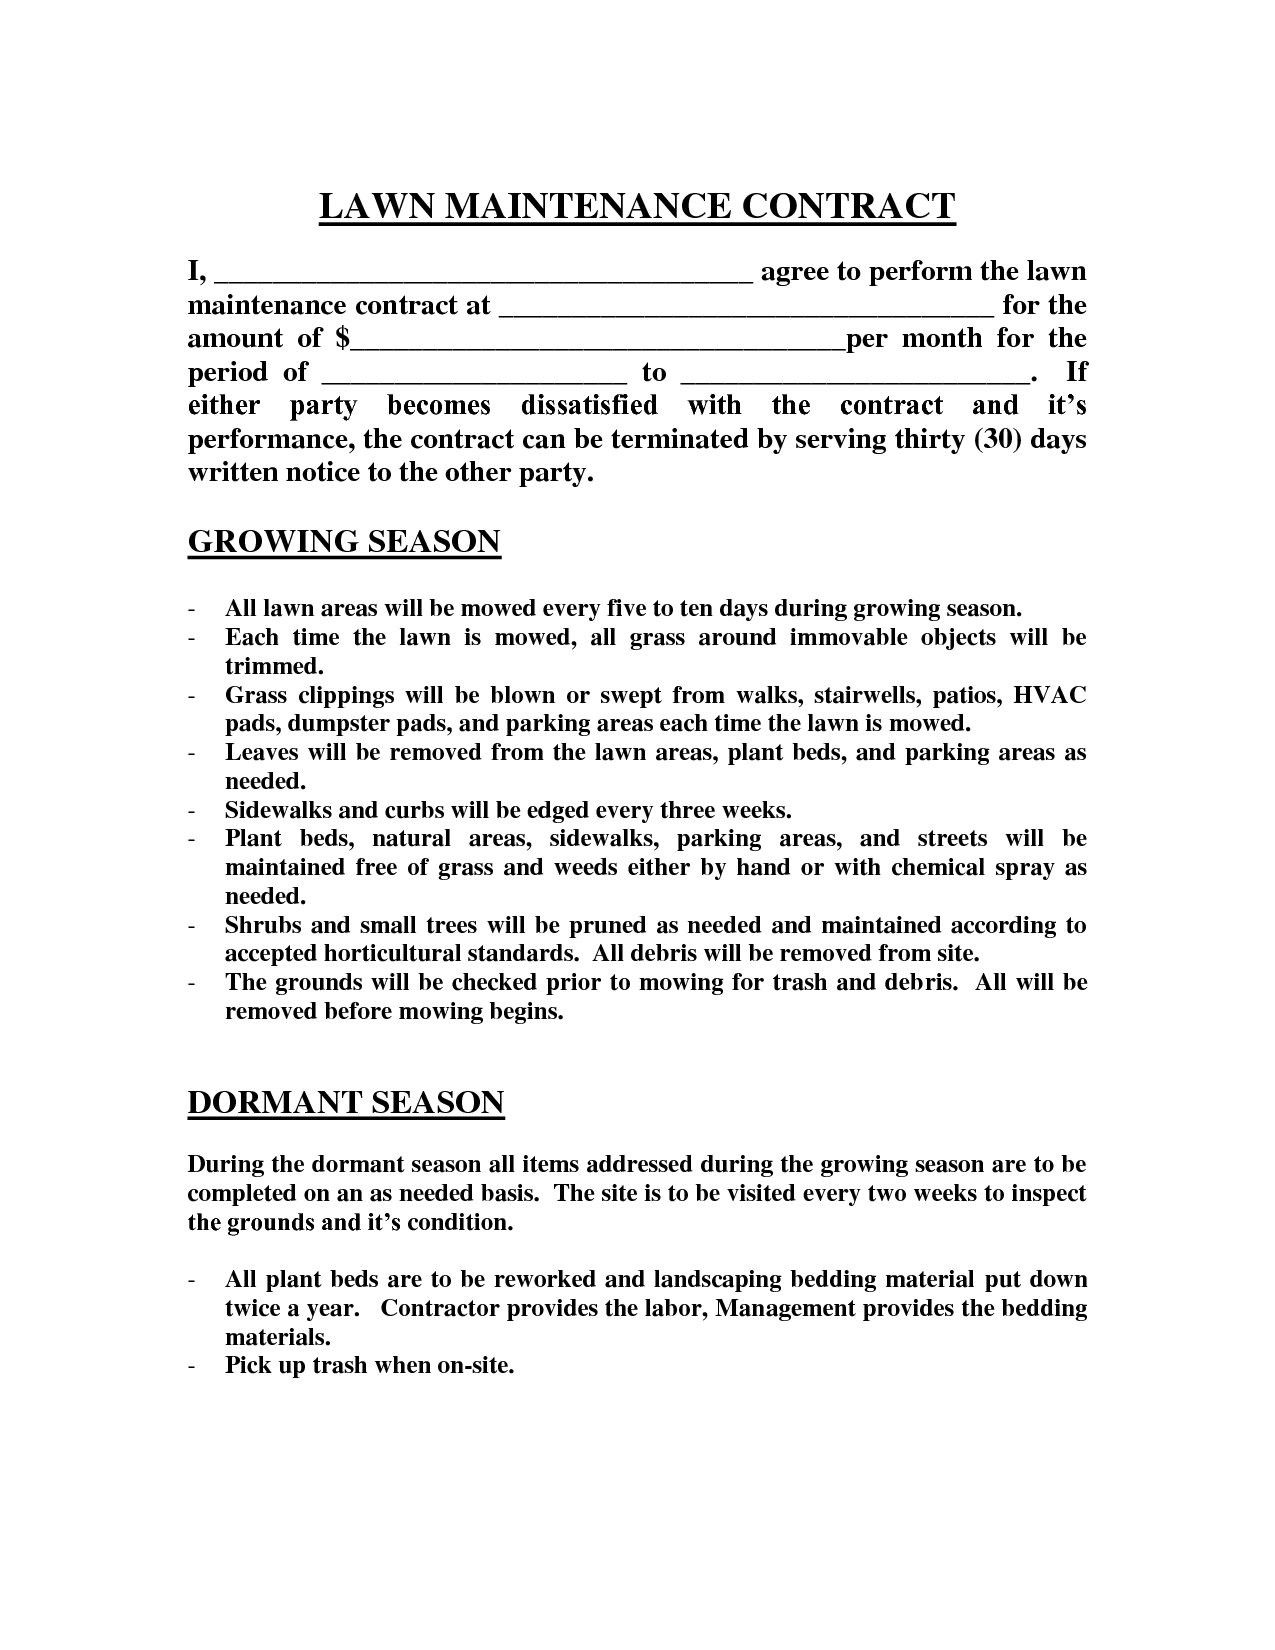 Lawn maintenance contract images lawn maintenance for Monthly service contract template